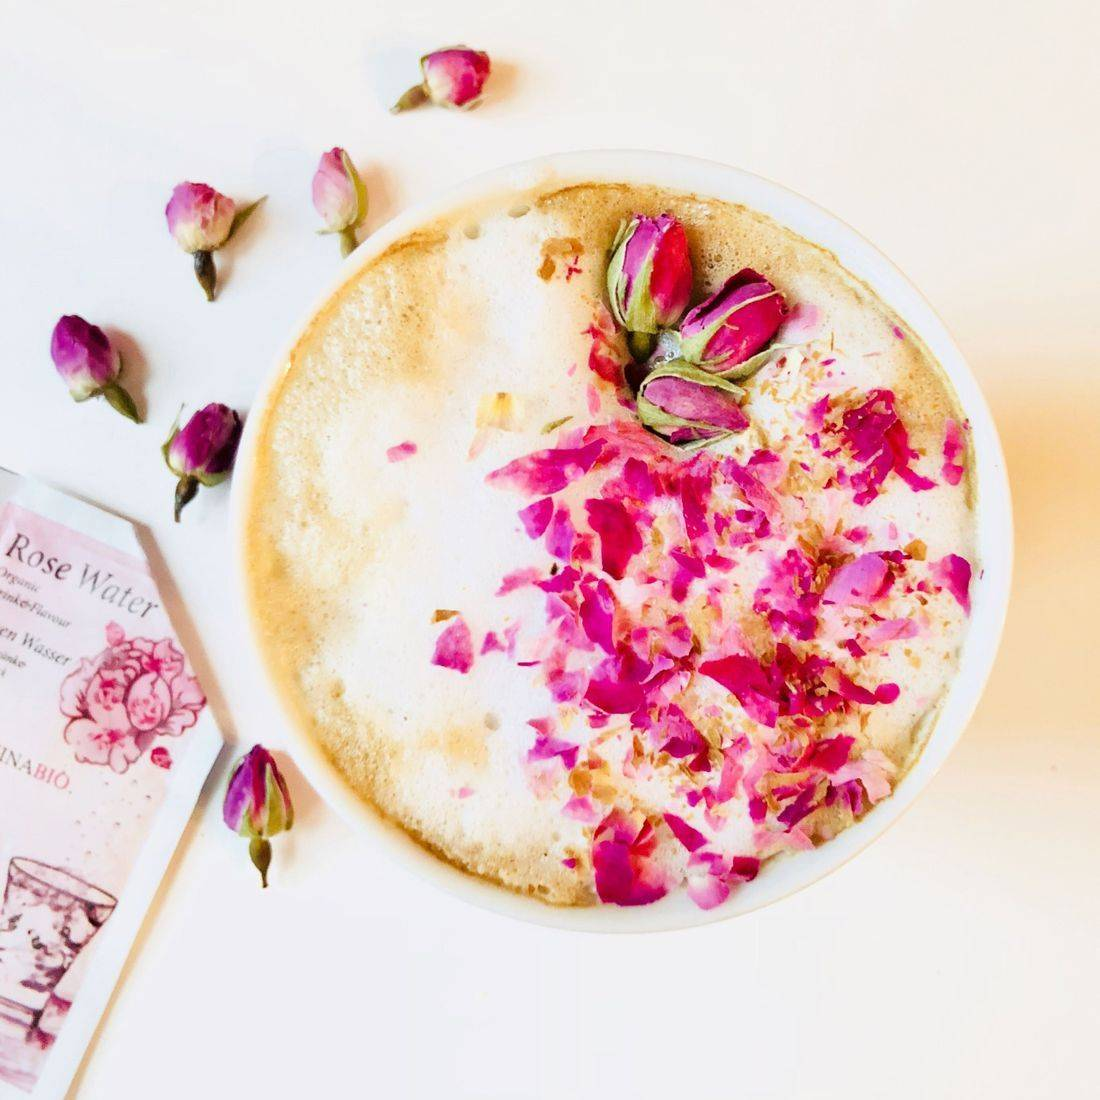 Rose Water Benefits Uses in Skincare